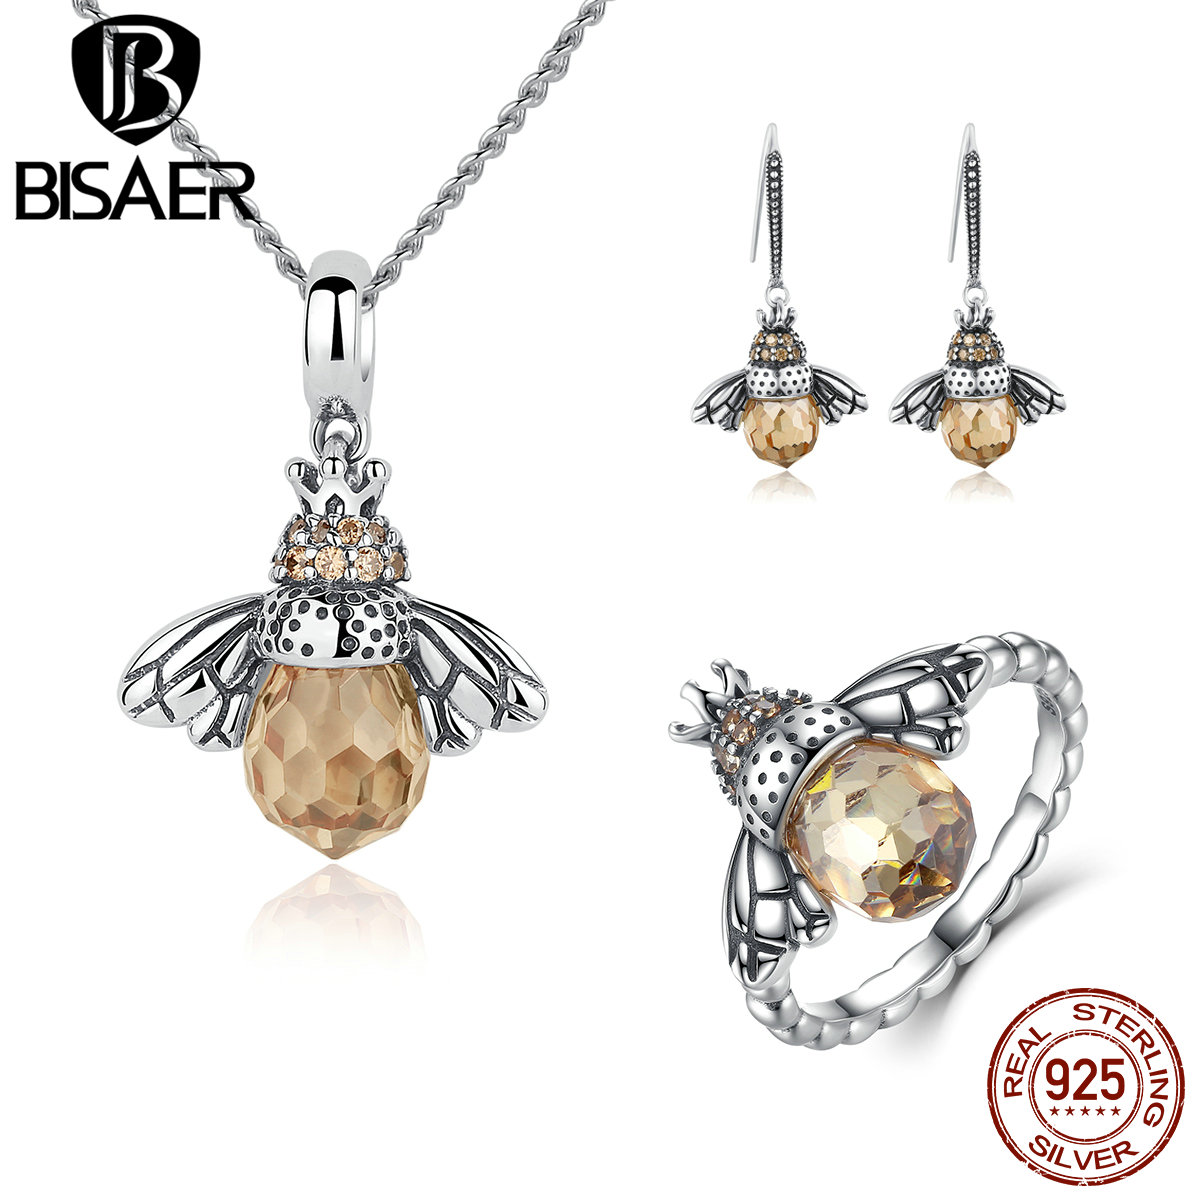 BISAER 925 Sterling Silver Cute Orange Bee Animal Pendants Necklaces & Stud Earrings & Ring Fashion Jewelry Sets WES043BISAER 925 Sterling Silver Cute Orange Bee Animal Pendants Necklaces & Stud Earrings & Ring Fashion Jewelry Sets WES043